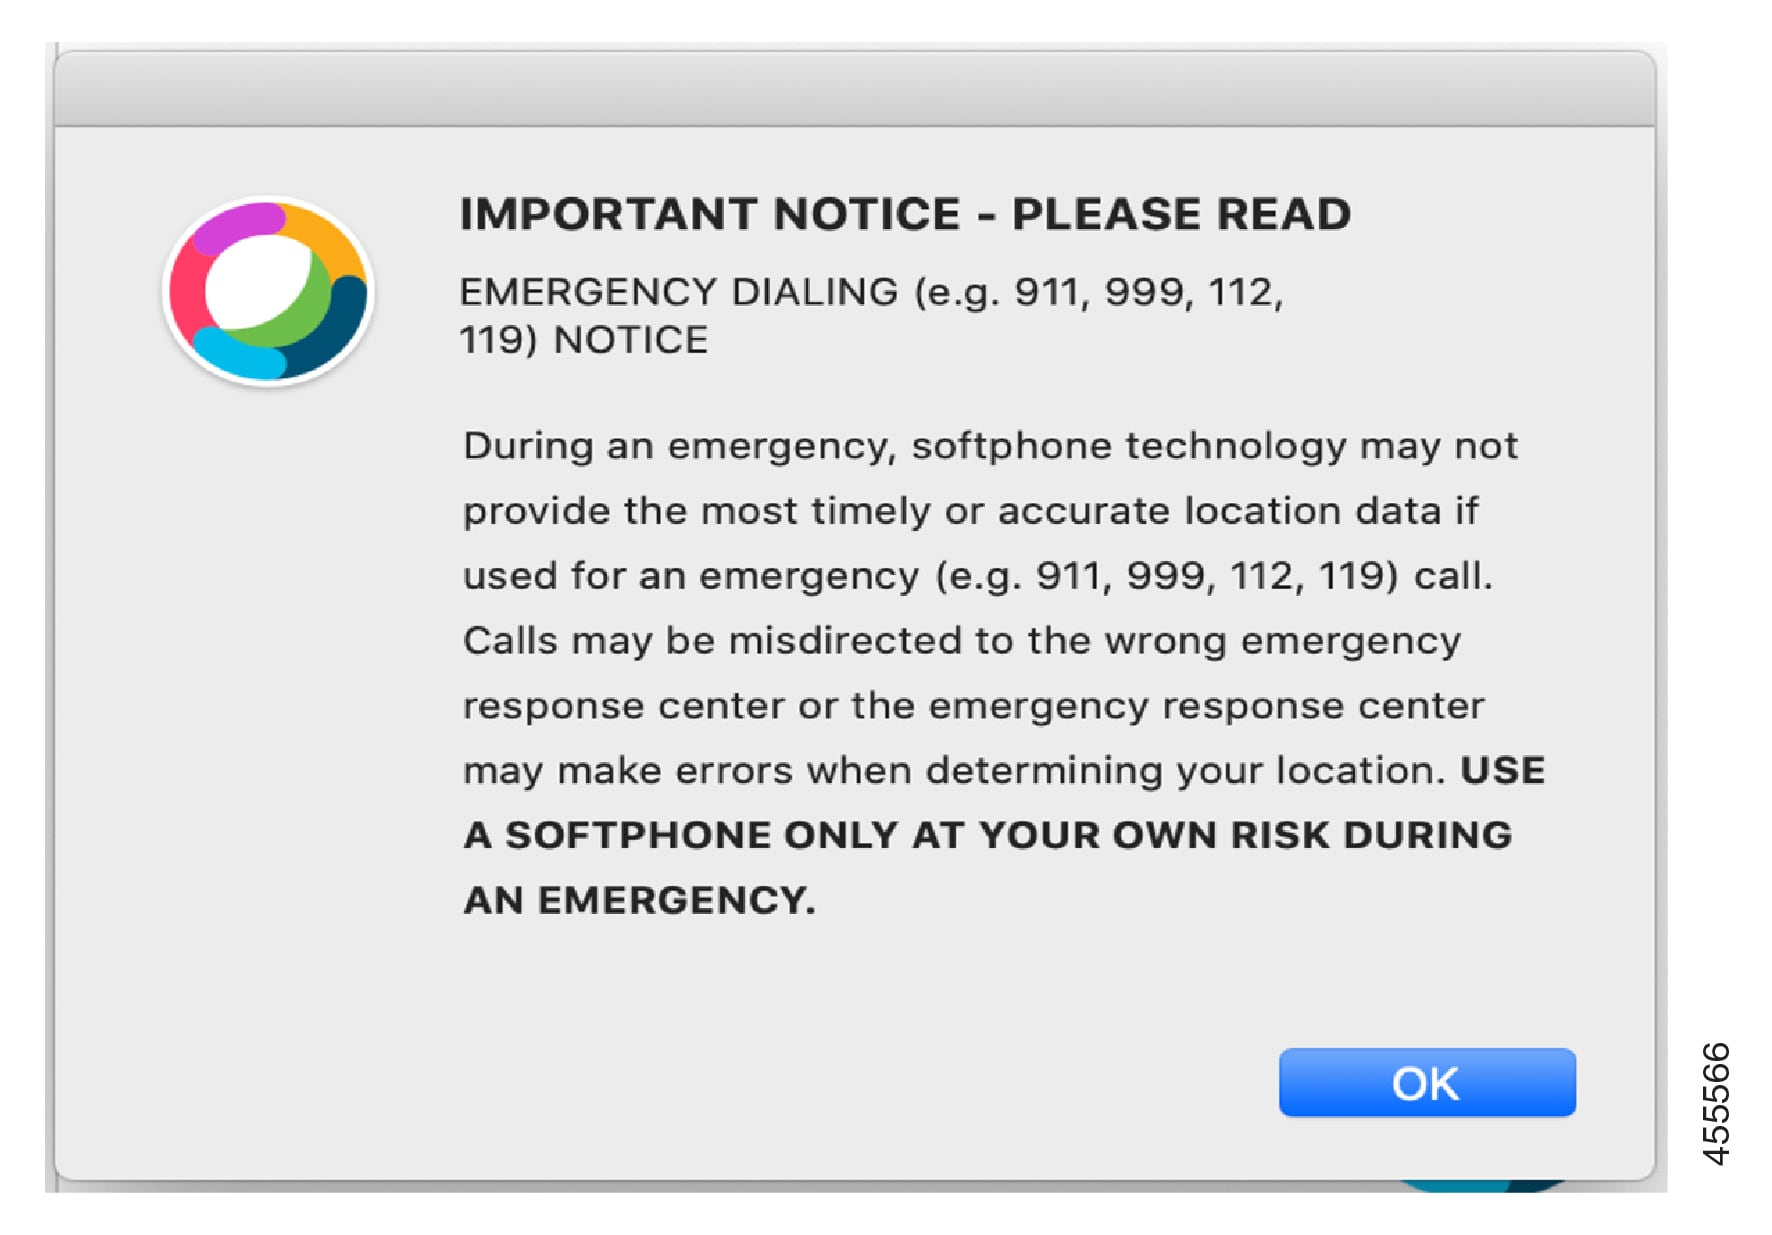 ECBN Notification that displays for emergency dialing.